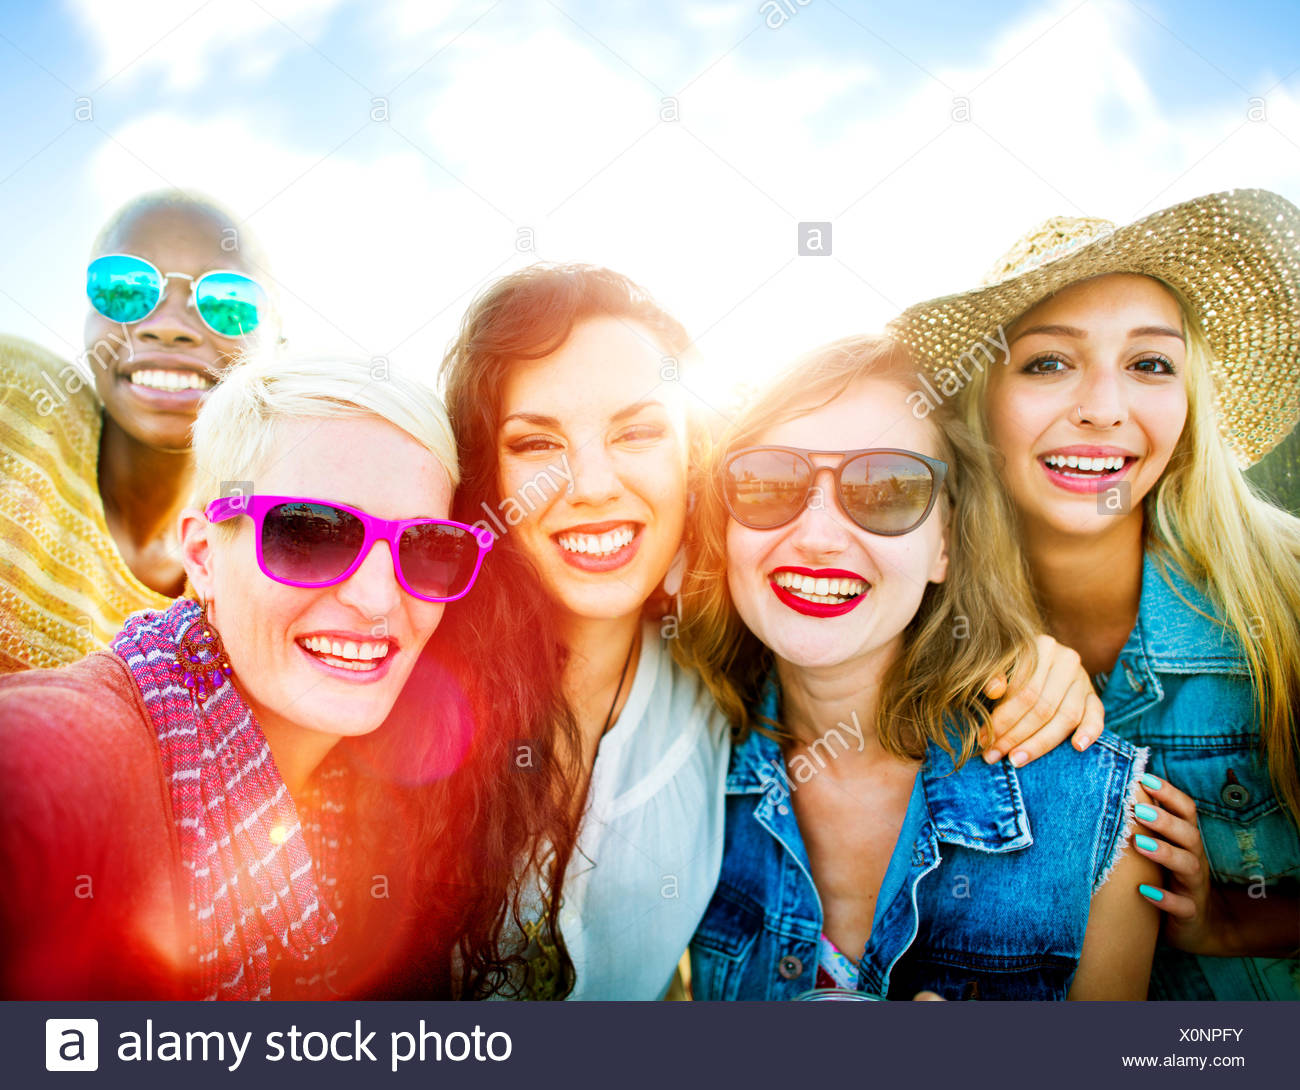 Girlfriends Friendship Party Happiness Summer Concept - Stock Image